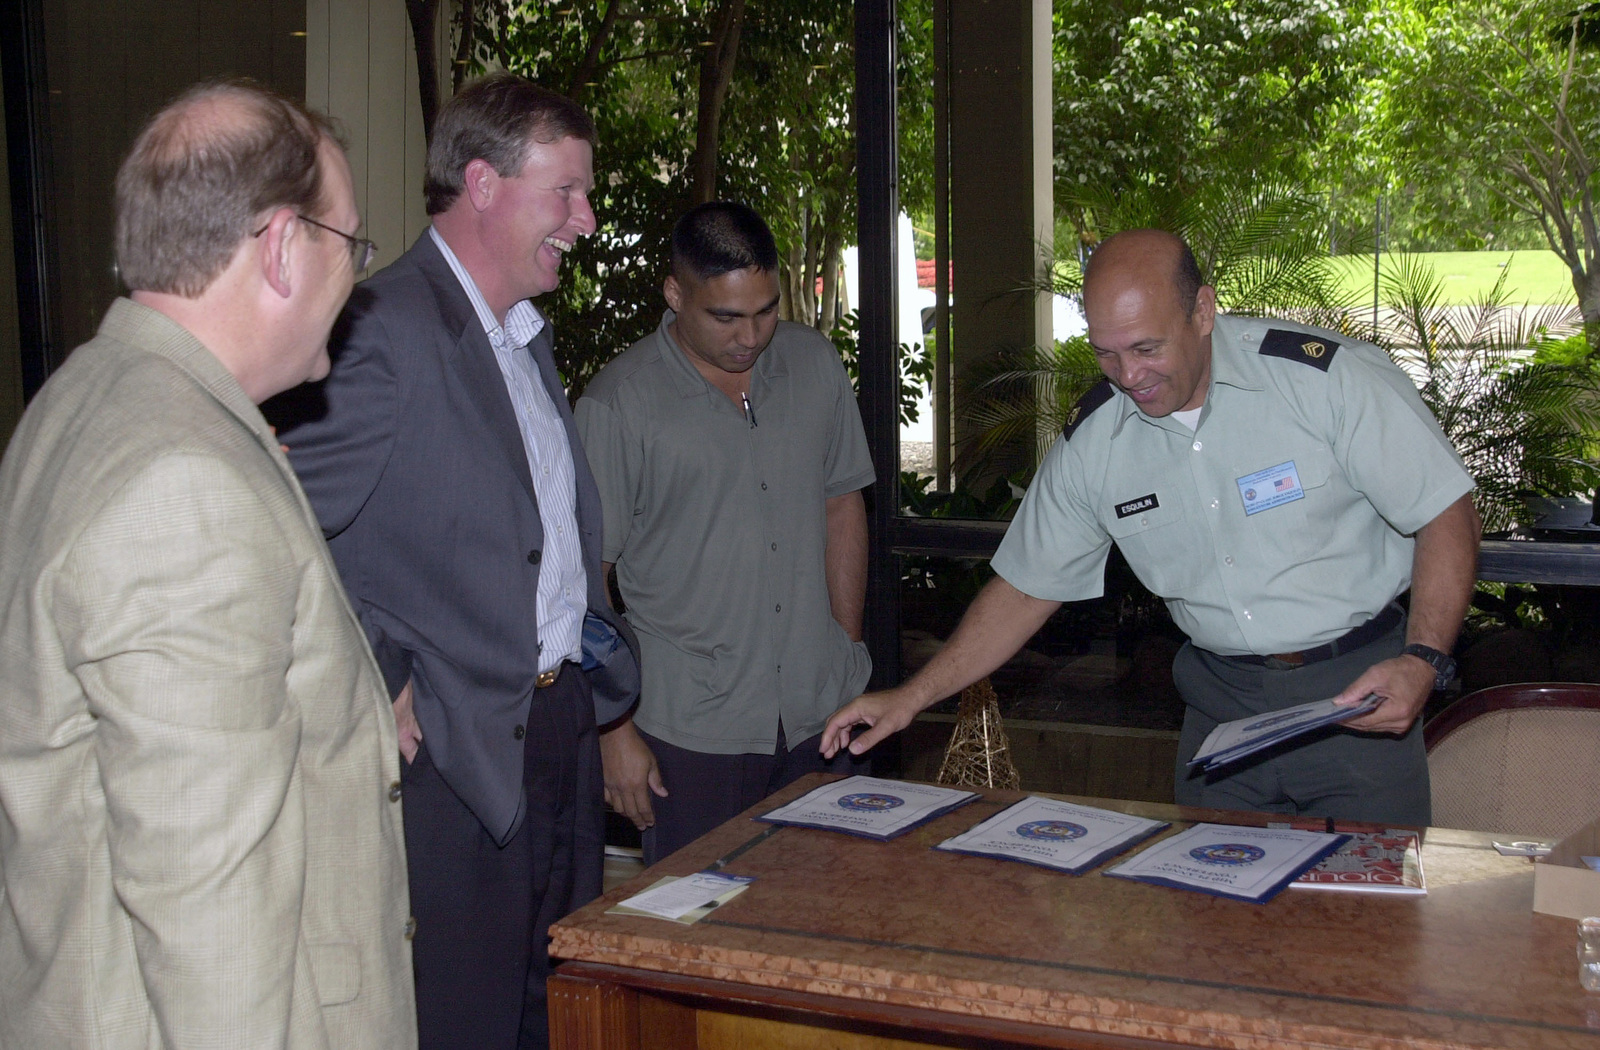 US Army (USA) STAFF Sergeant (SSG) Jorge Esquilin (right), assigned to the US Army South (USARSO) Tactical Exercise Division hands out welcome packets during the Mid-Planning Conference for Peacekeeping Operations South 03 (PKO South 03), held at the Sheraton Hotel, Buenos Aires, Argentina (ARG)